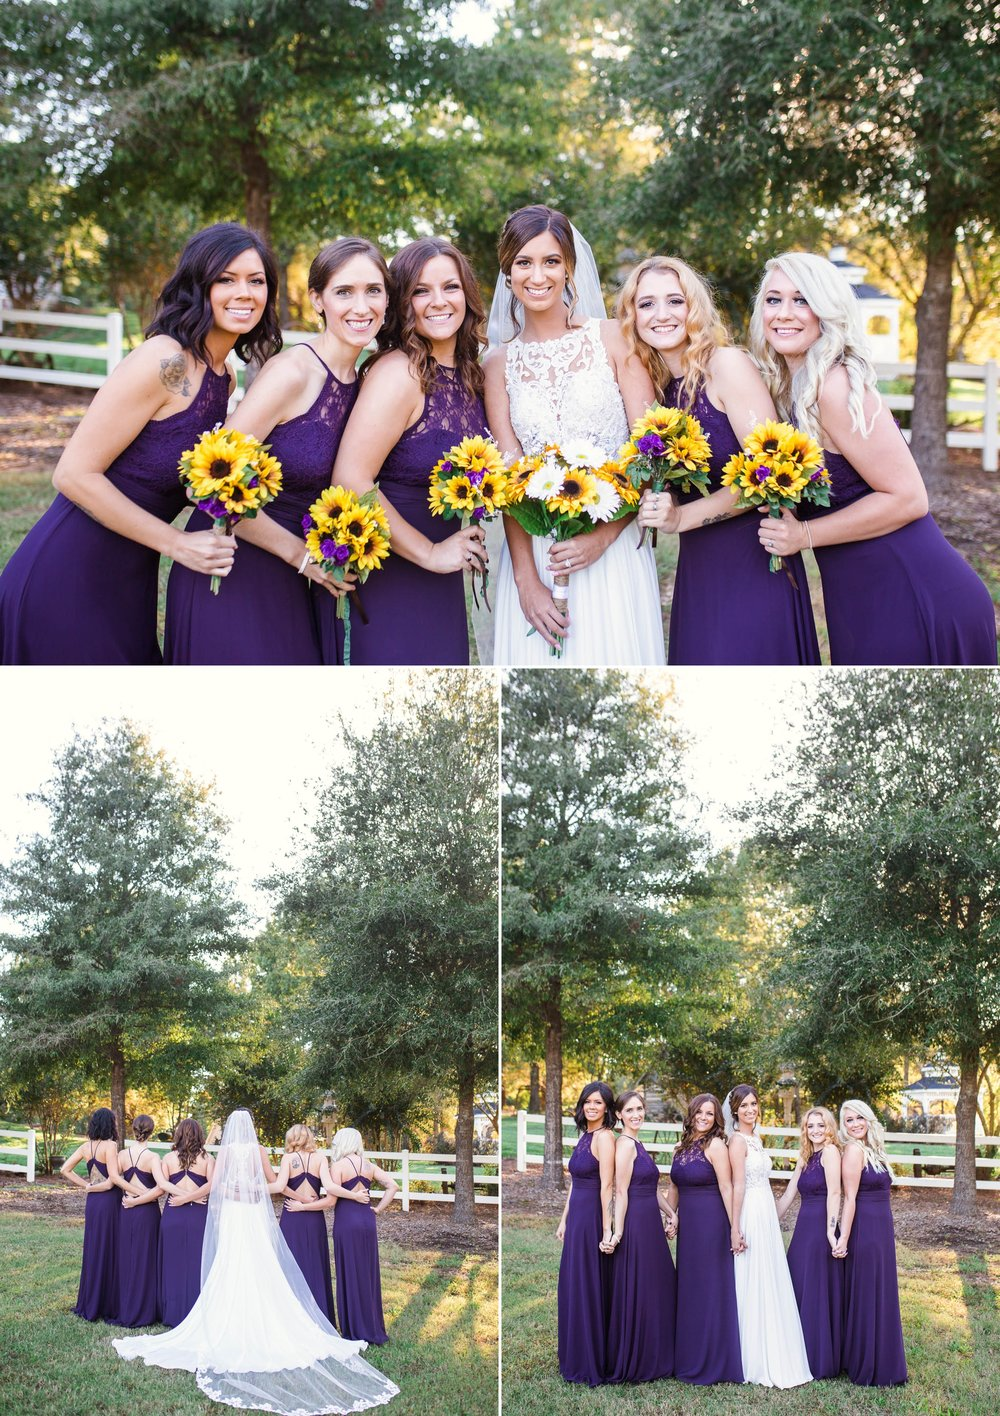 Bridesmaids Portraits - Brittany + Greg - The Groomes Place - Charlotte, NC Wedding Photographer